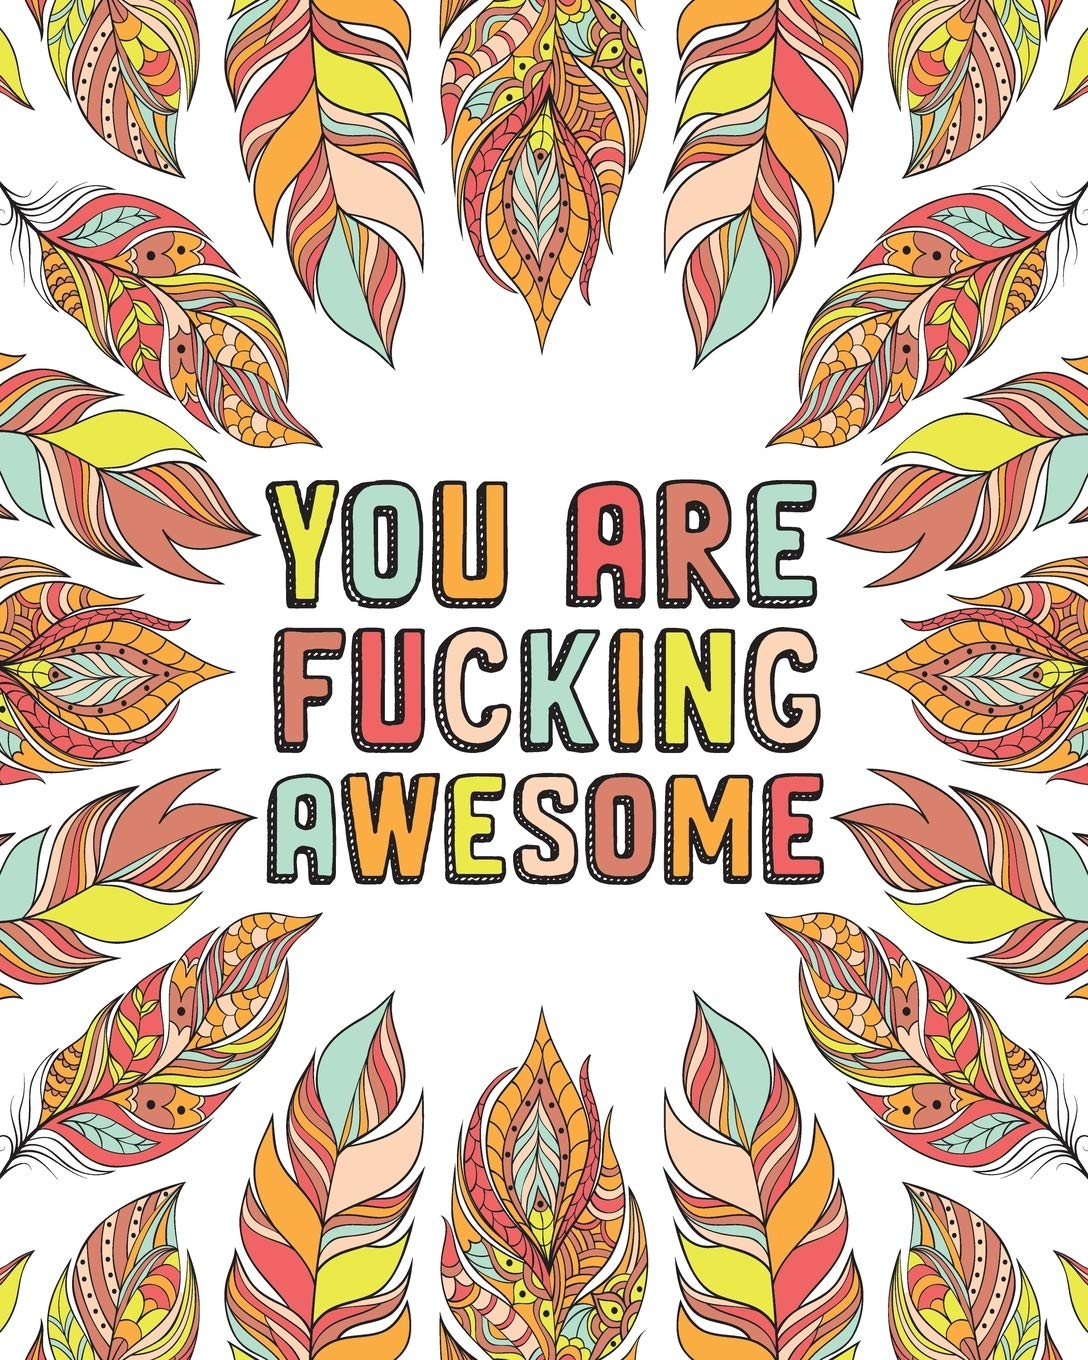 Amazon.com: YOU ARE FUCKING AWESOME: A Motivating Swearing